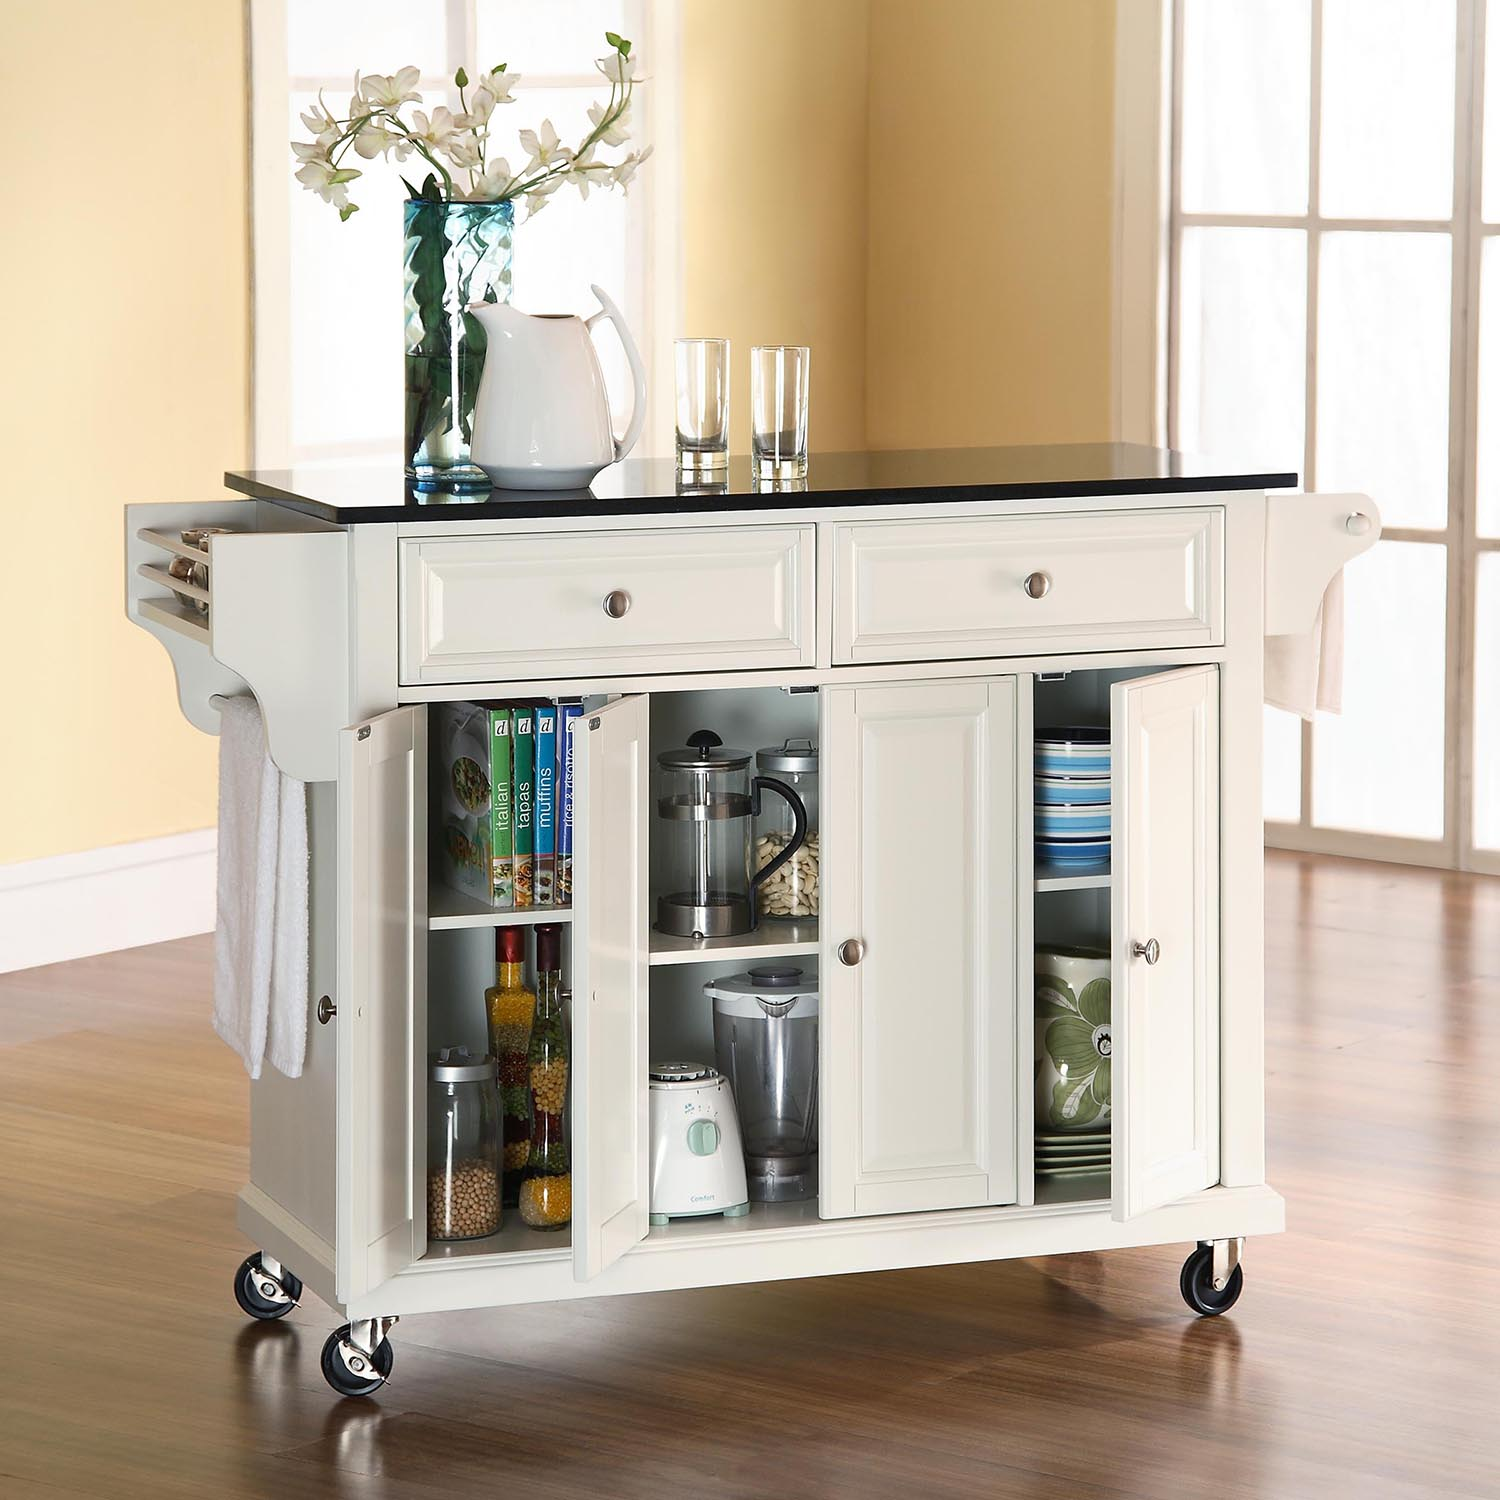 Solid Black Granite Top Kitchen Cart/Island - Casters, White - CROS-KF30004EWH